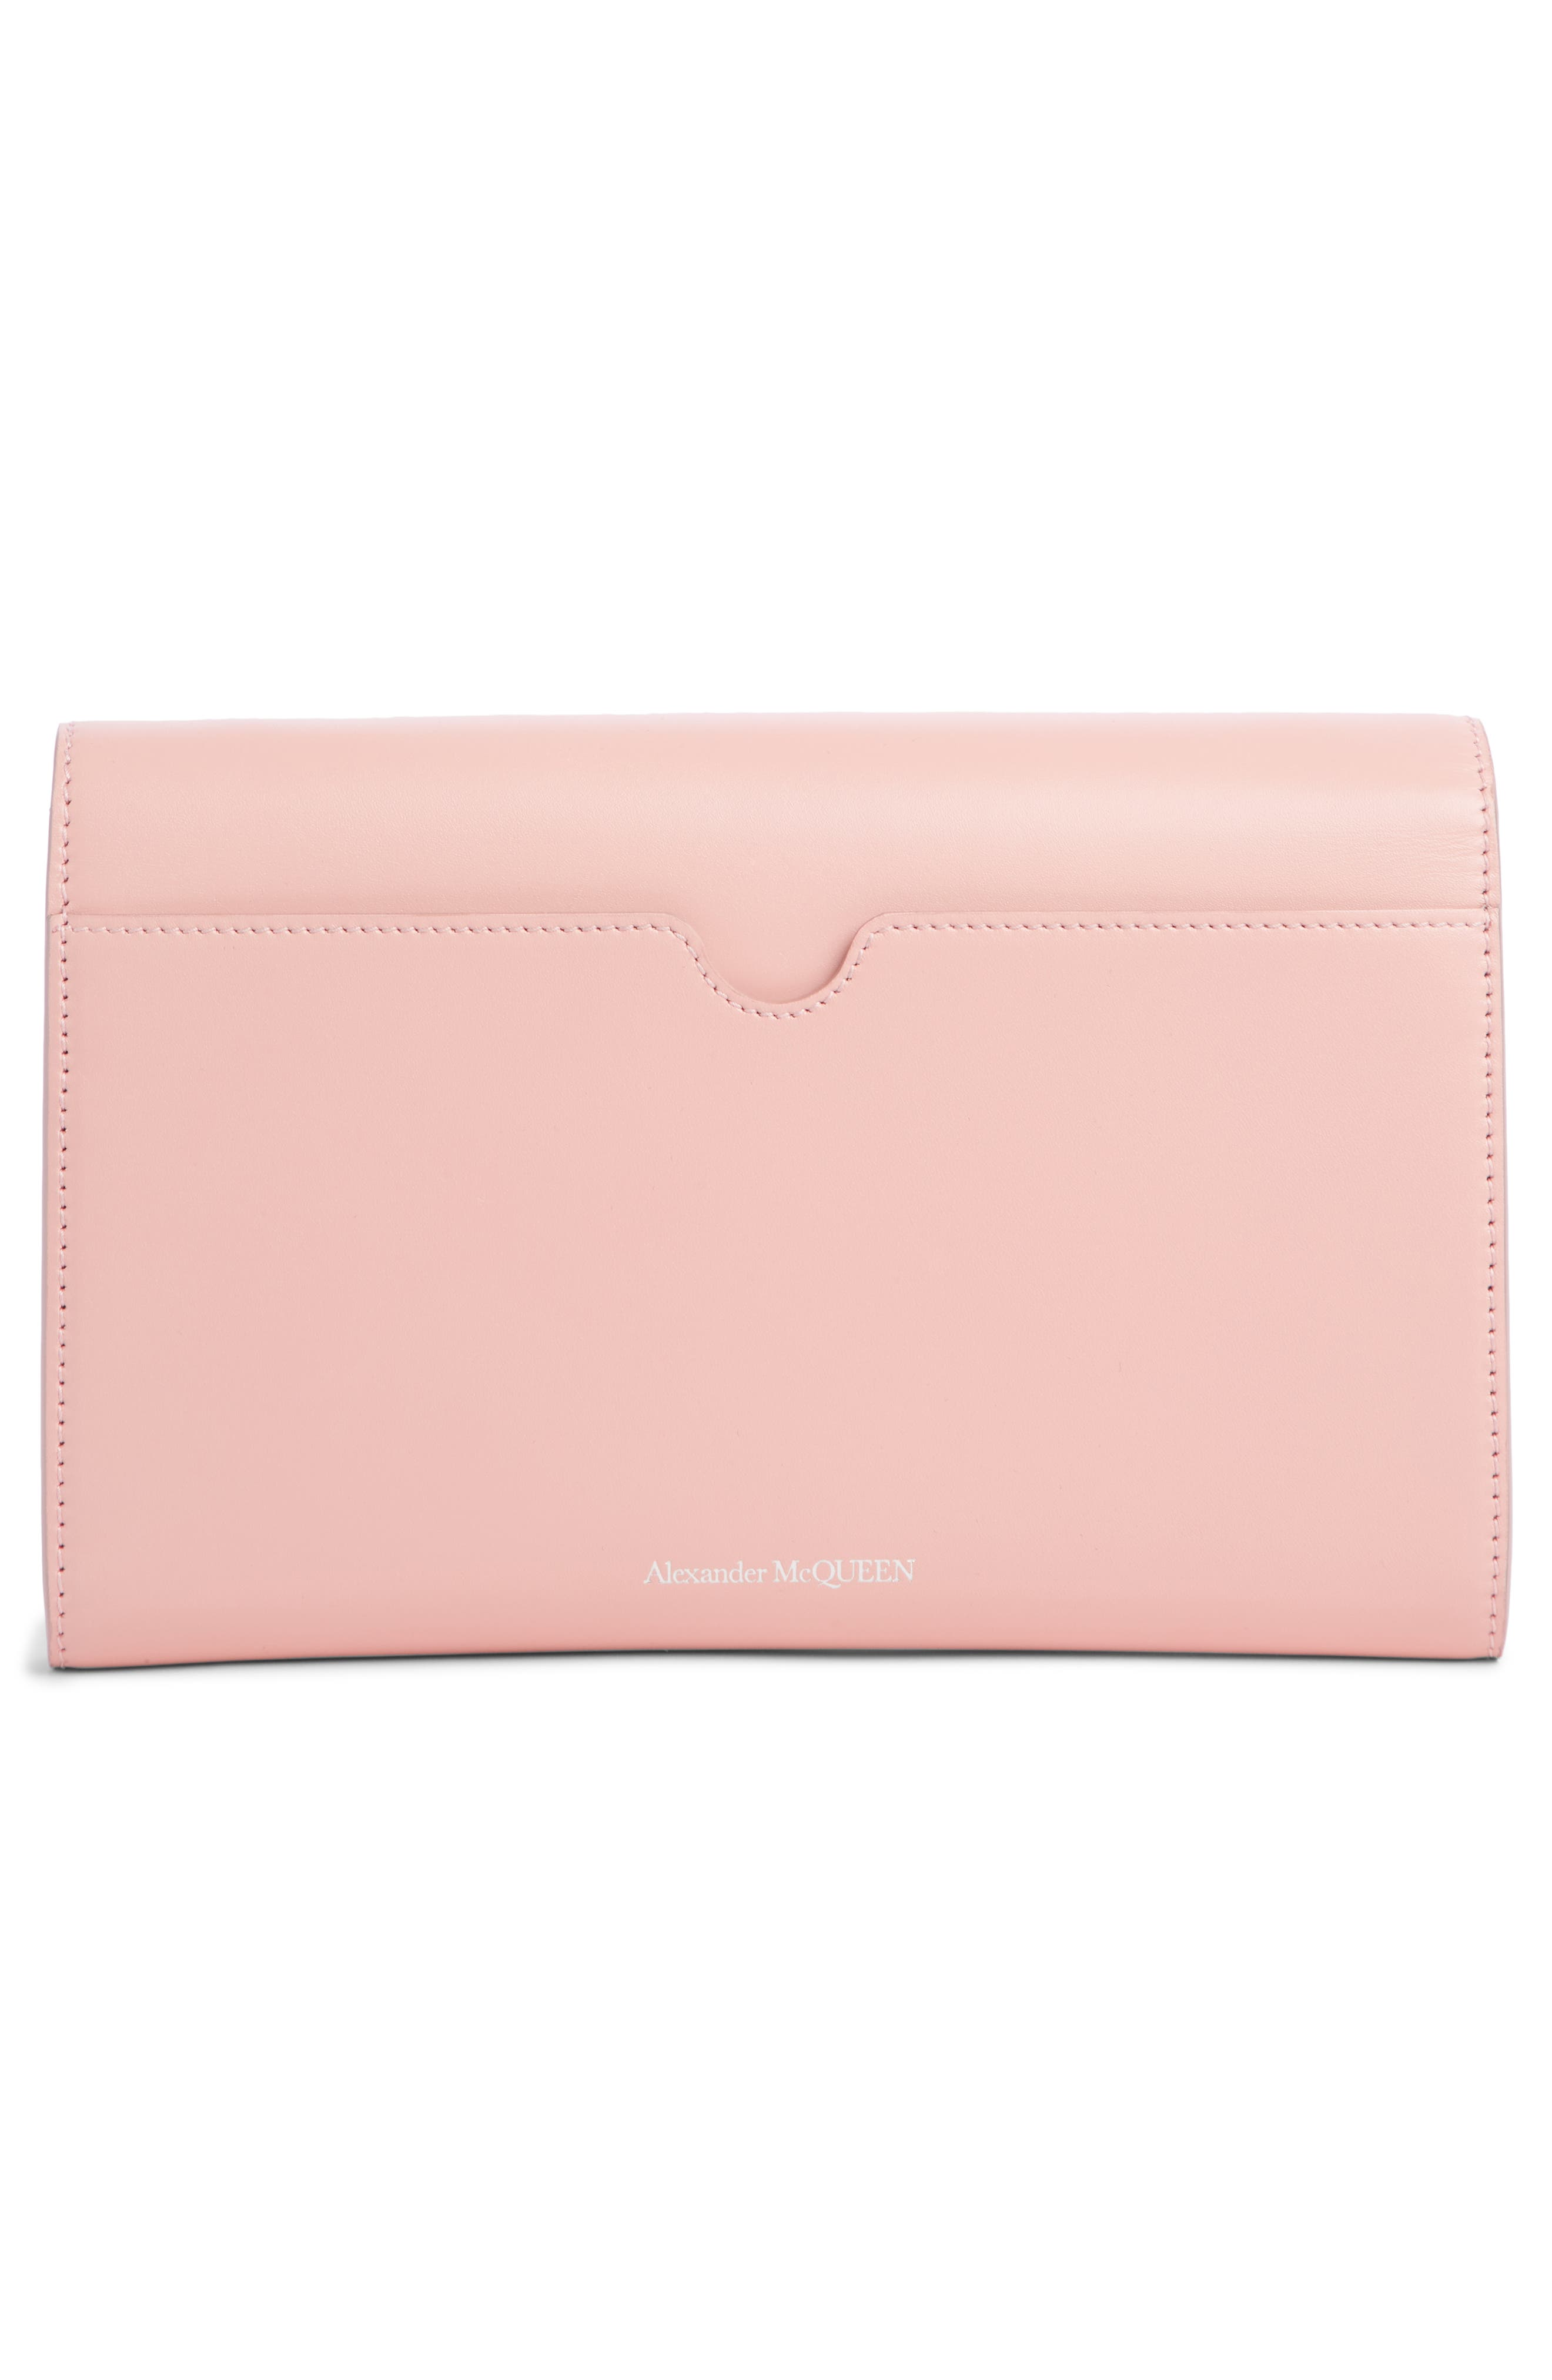 Pin Calfskin Wallet on a Chain,                             Alternate thumbnail 3, color,                             ANEMONE